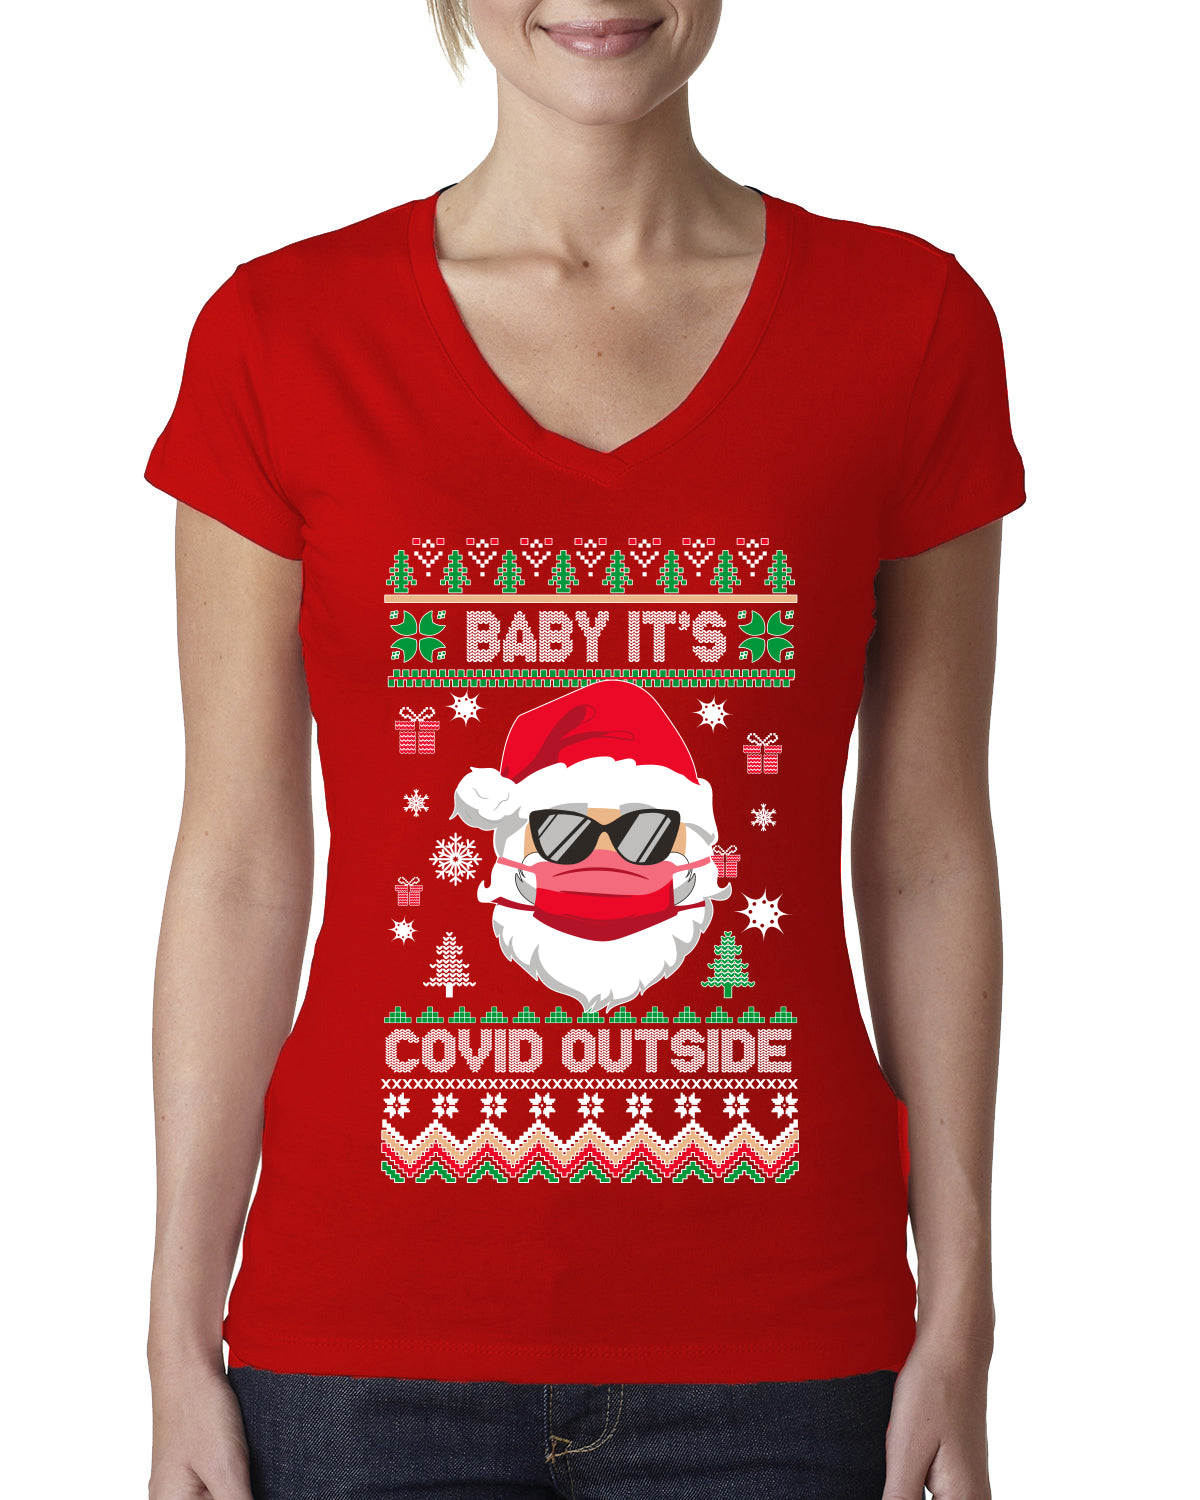 Santa Baby Its Covid Outside Pandemic Ugly Christmas Sweater Womens Junior Fit V-Neck Tee